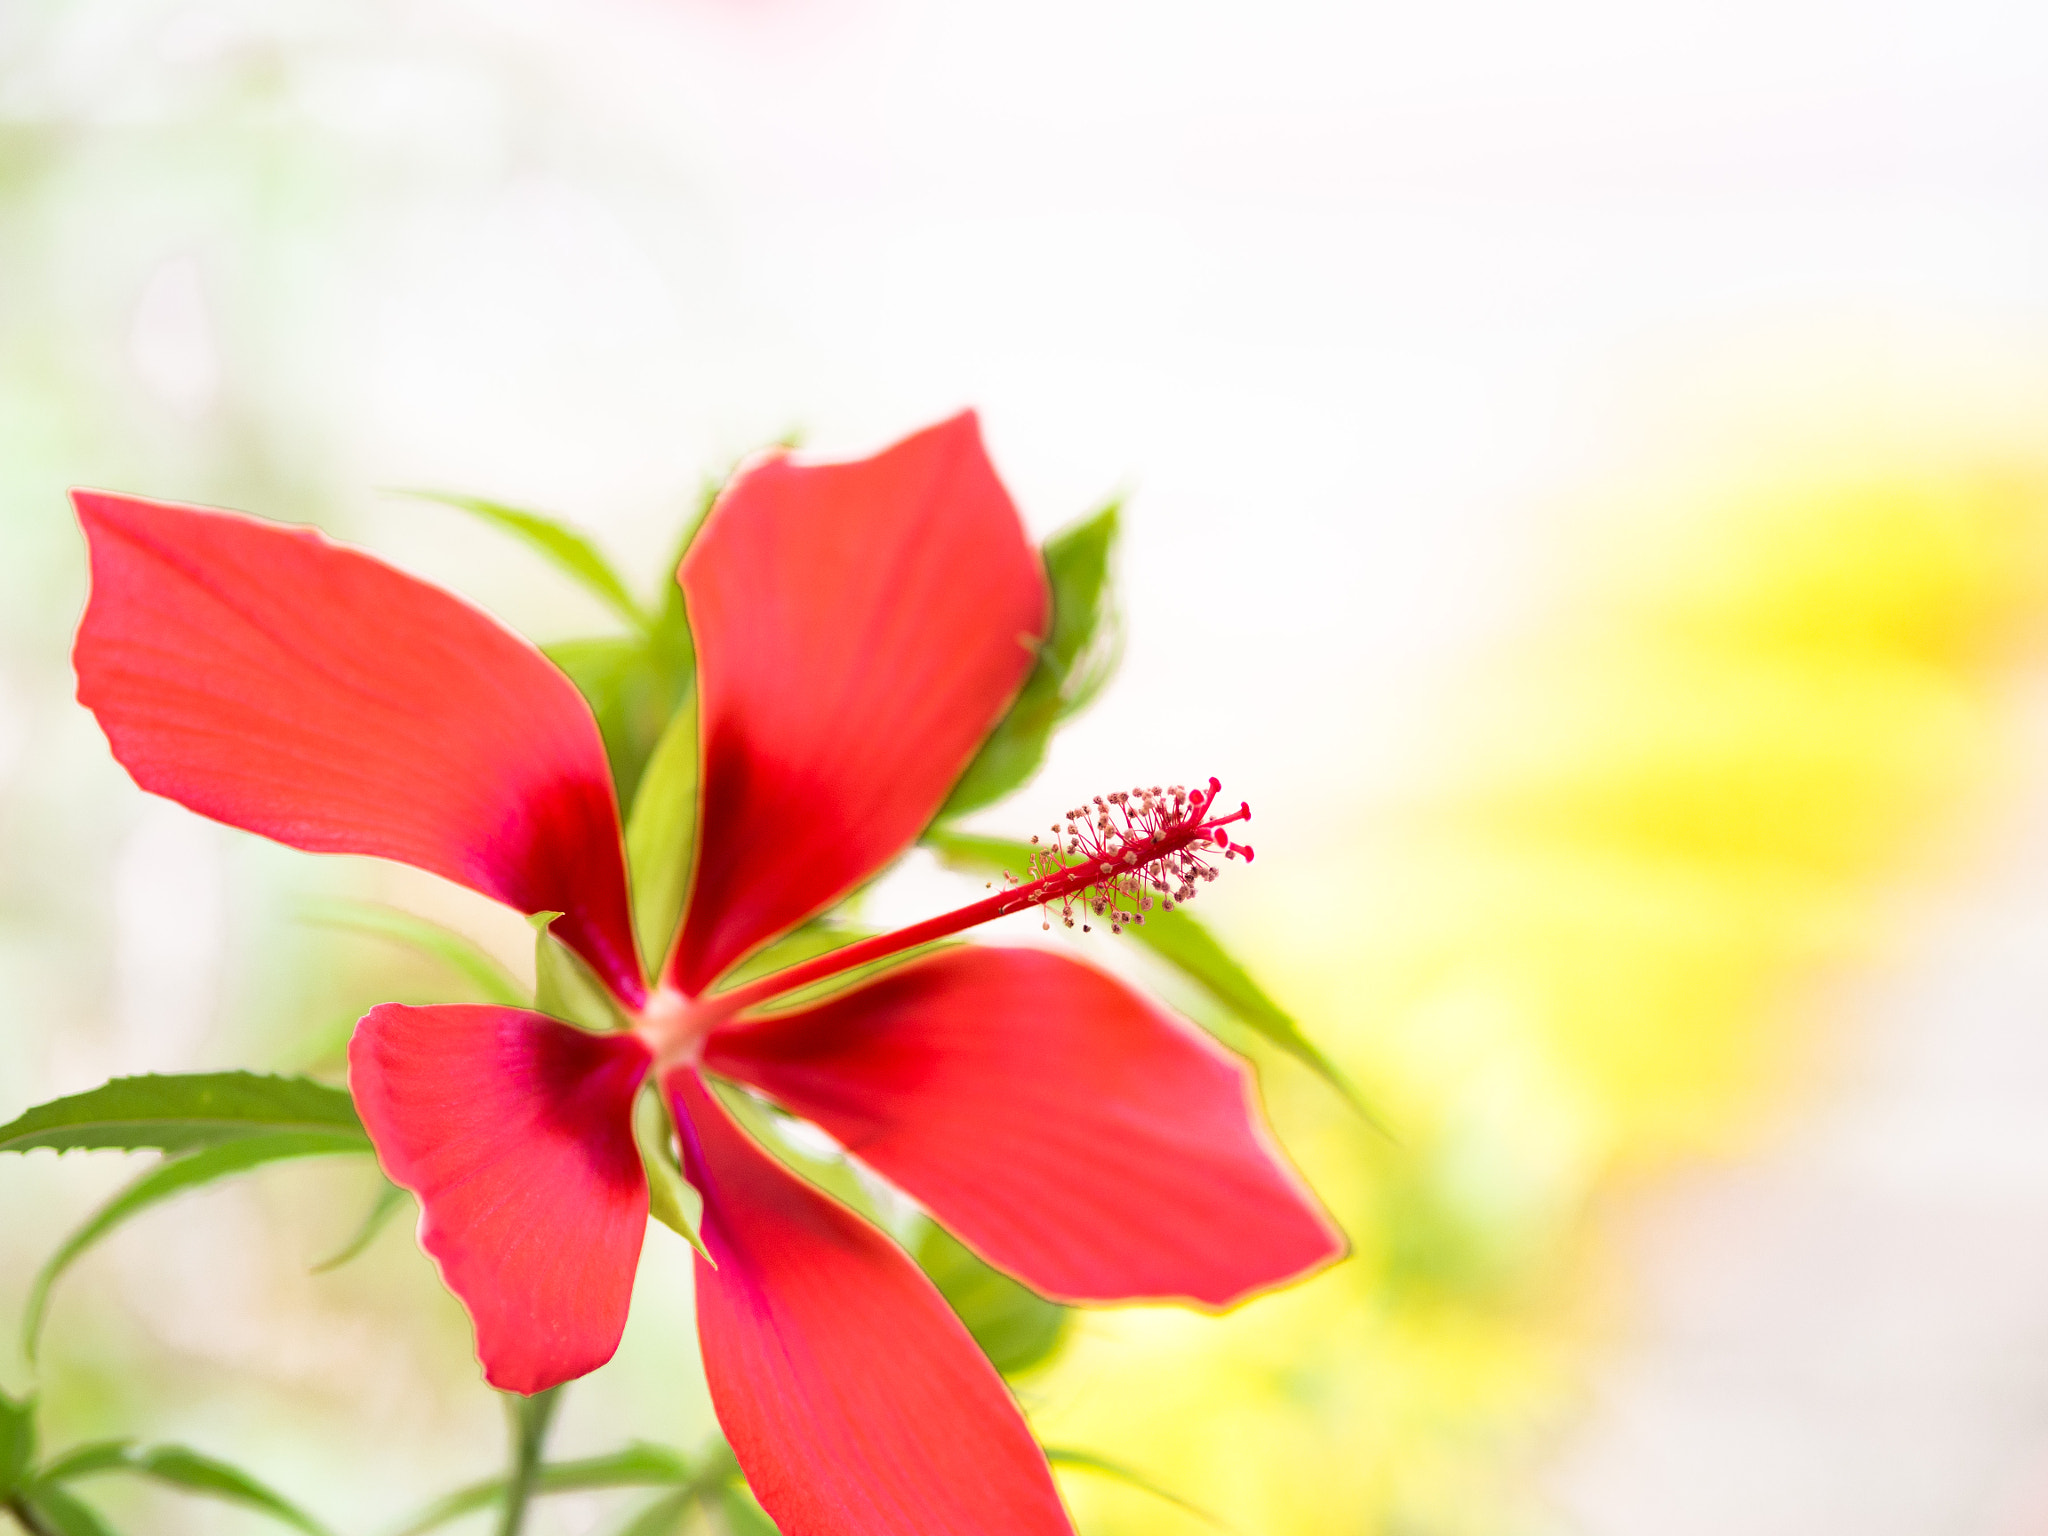 Photograph scarlet rosemallow by Kaz Watanabe on 500px